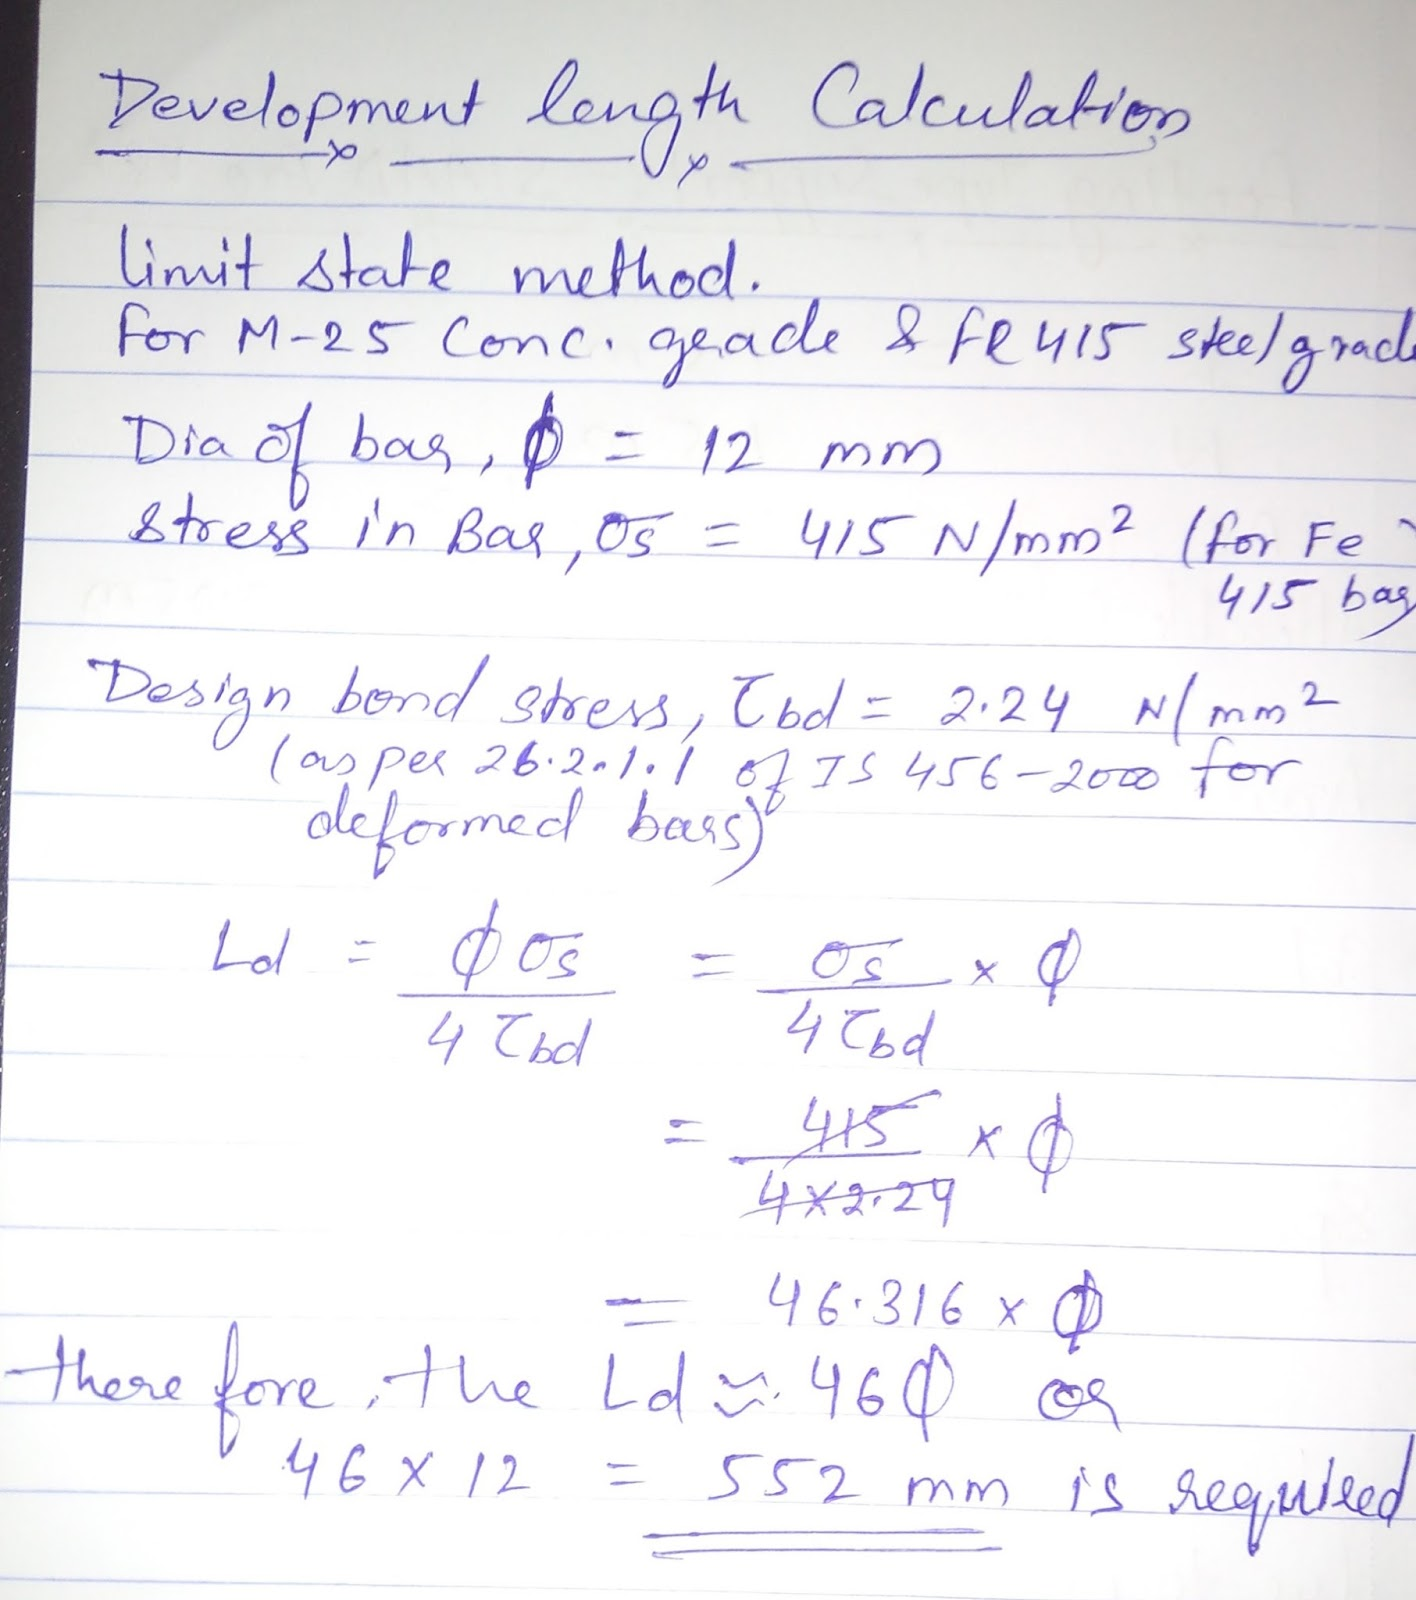 Civil Engineering: Development Length Calculation as per